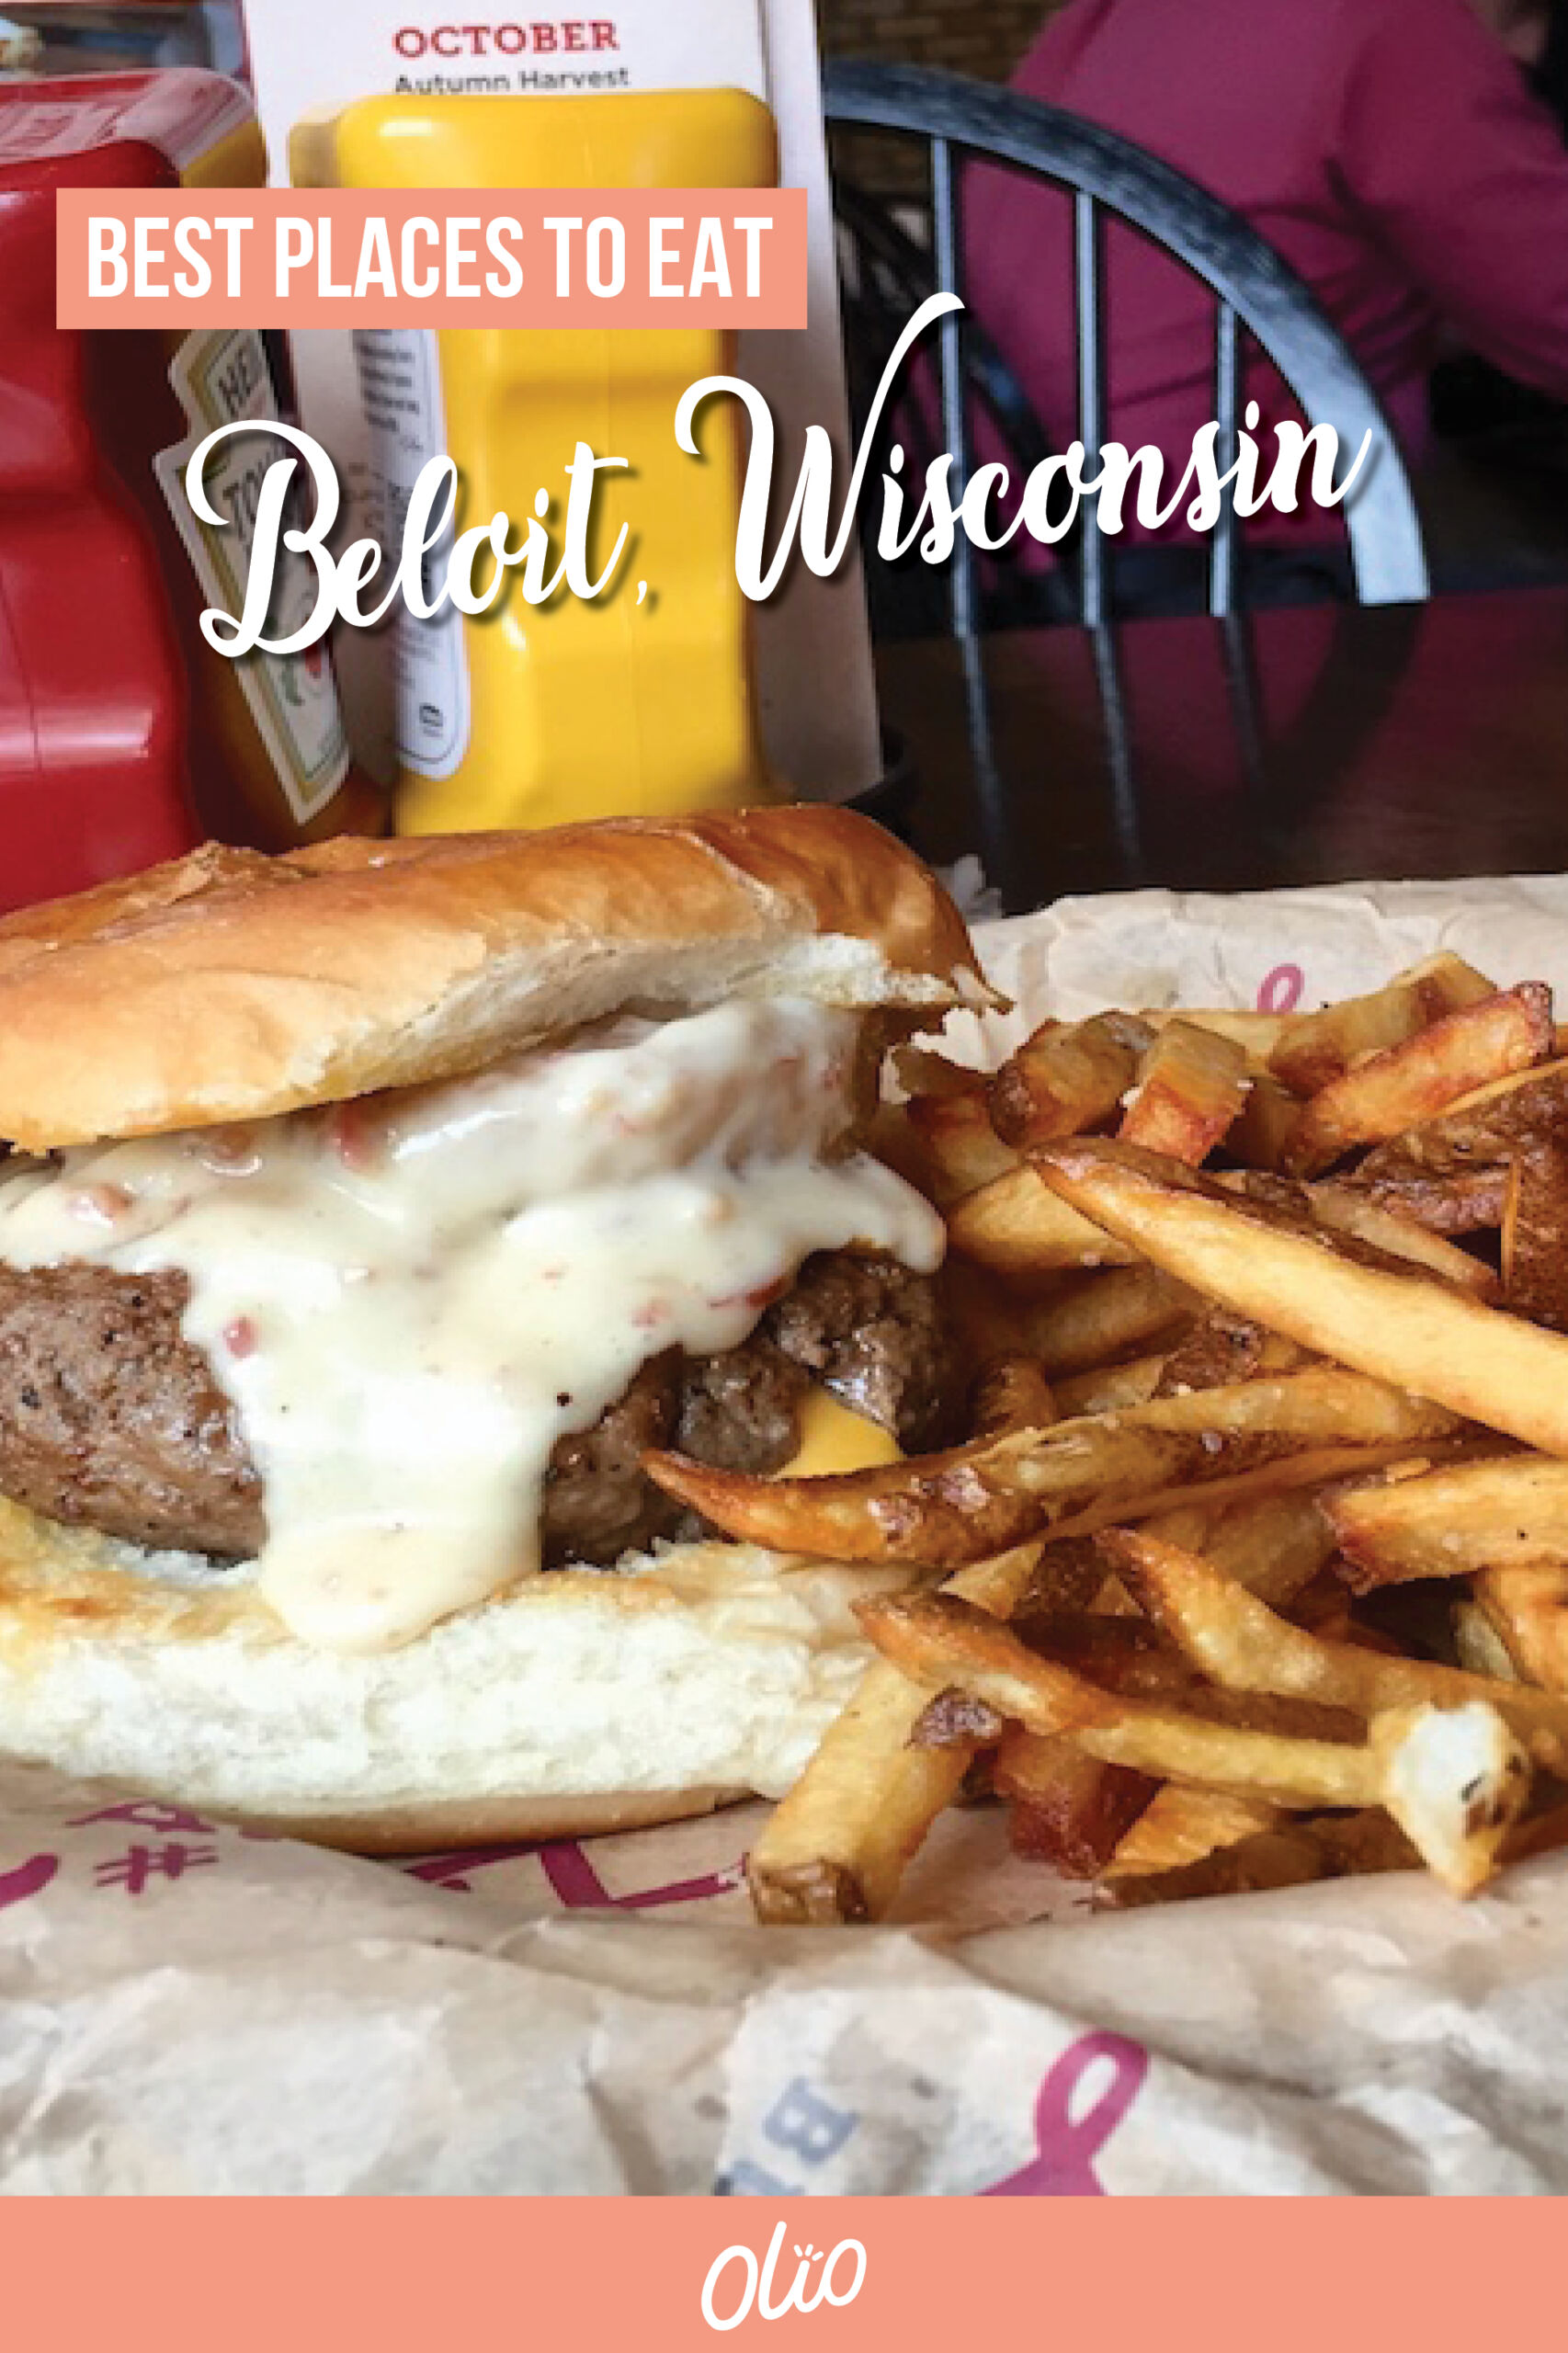 Need places to eat in Beloit, Wisconsin? Look no further! These unique eateries serve Wisconsin favorites like cheese curds and prime rib alongside innovative and inspiring cuisine. #Wisconsin